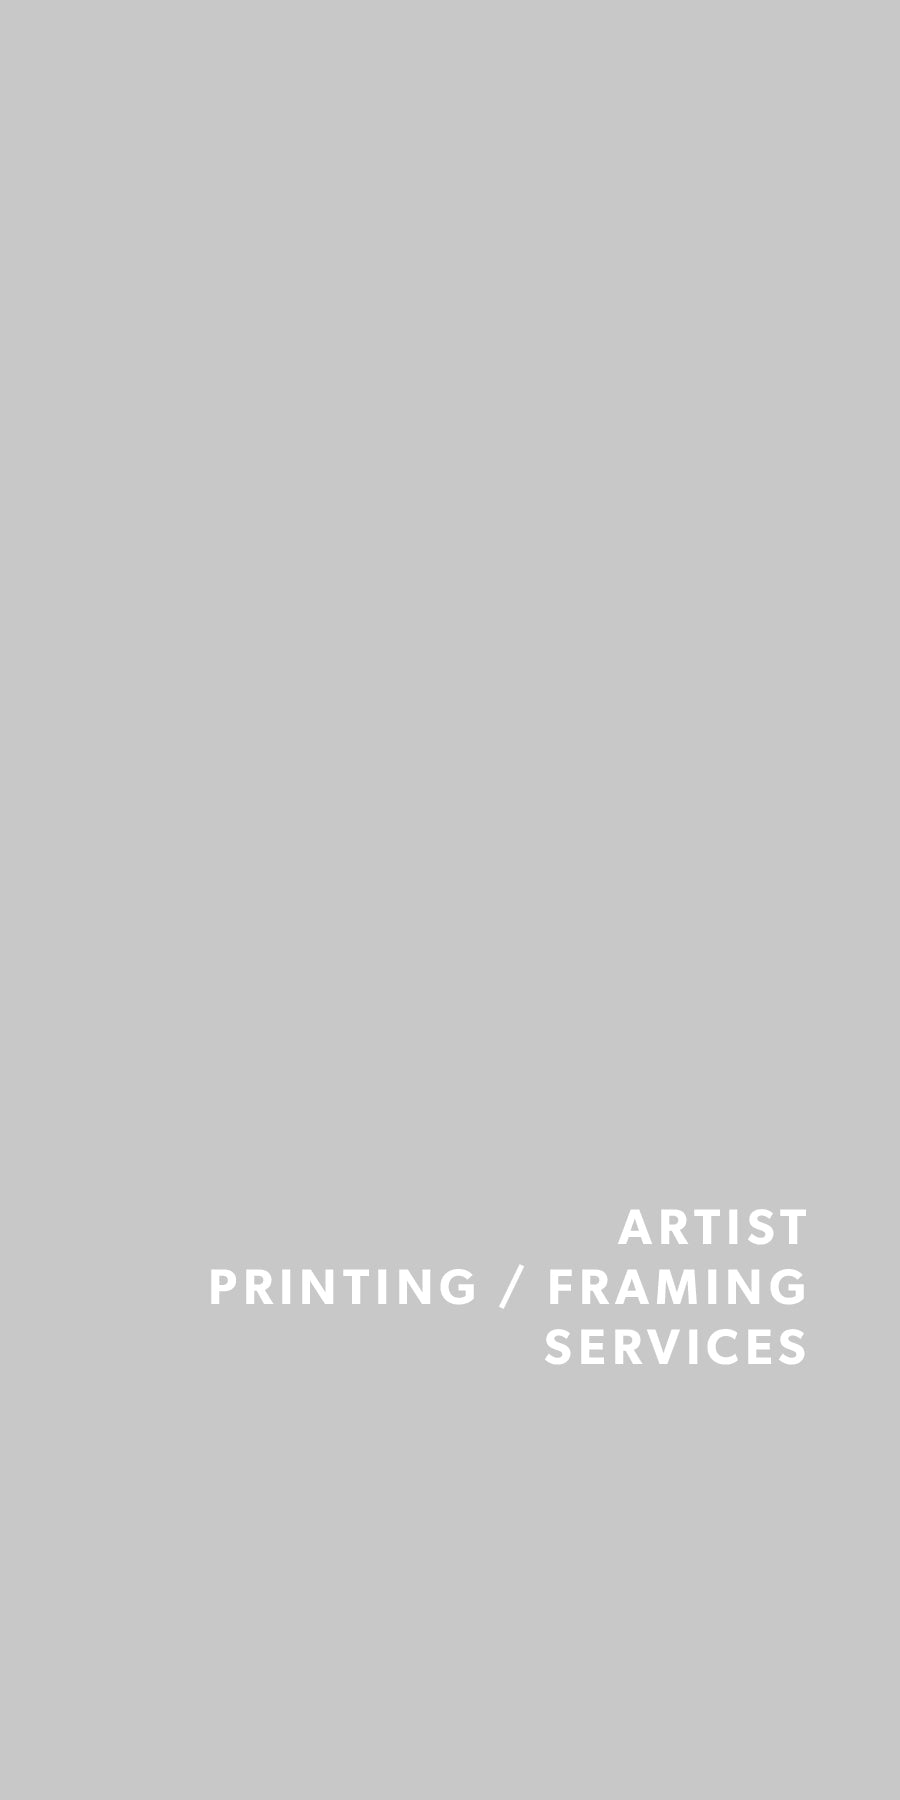 Artist Printing Services